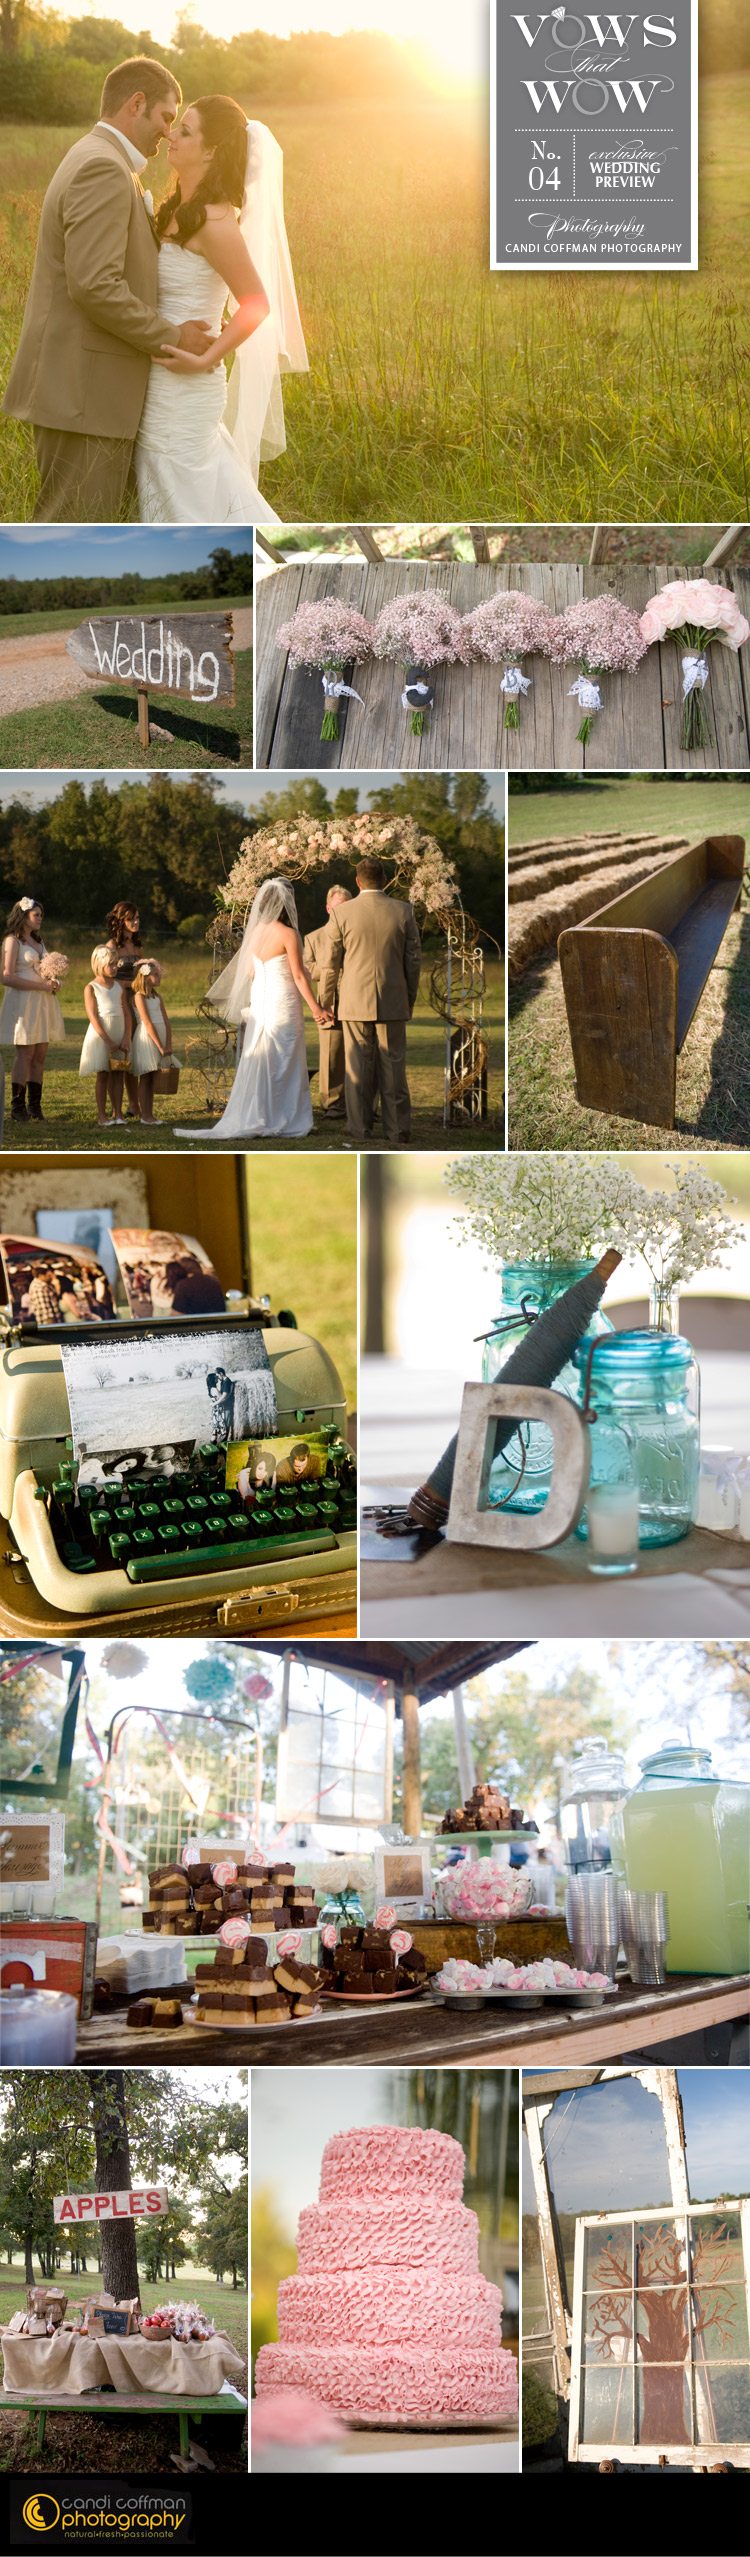 Brides of Oklahoma vows that wow featuring Oklahoma wedding photographer Candi Coffman Photography